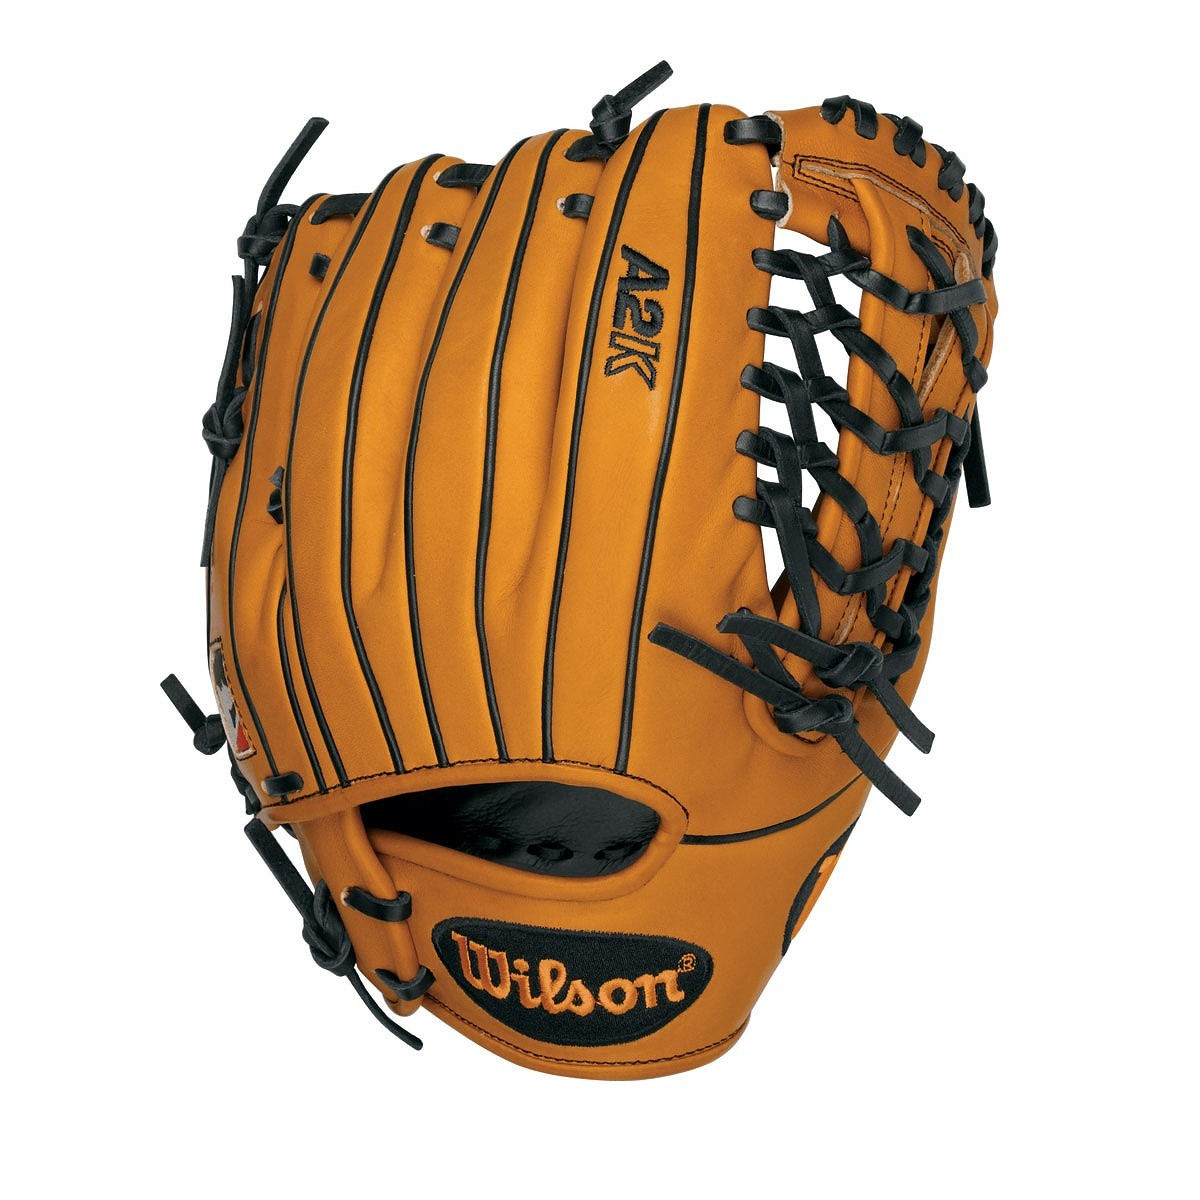 Baseball glove pictures clipart.